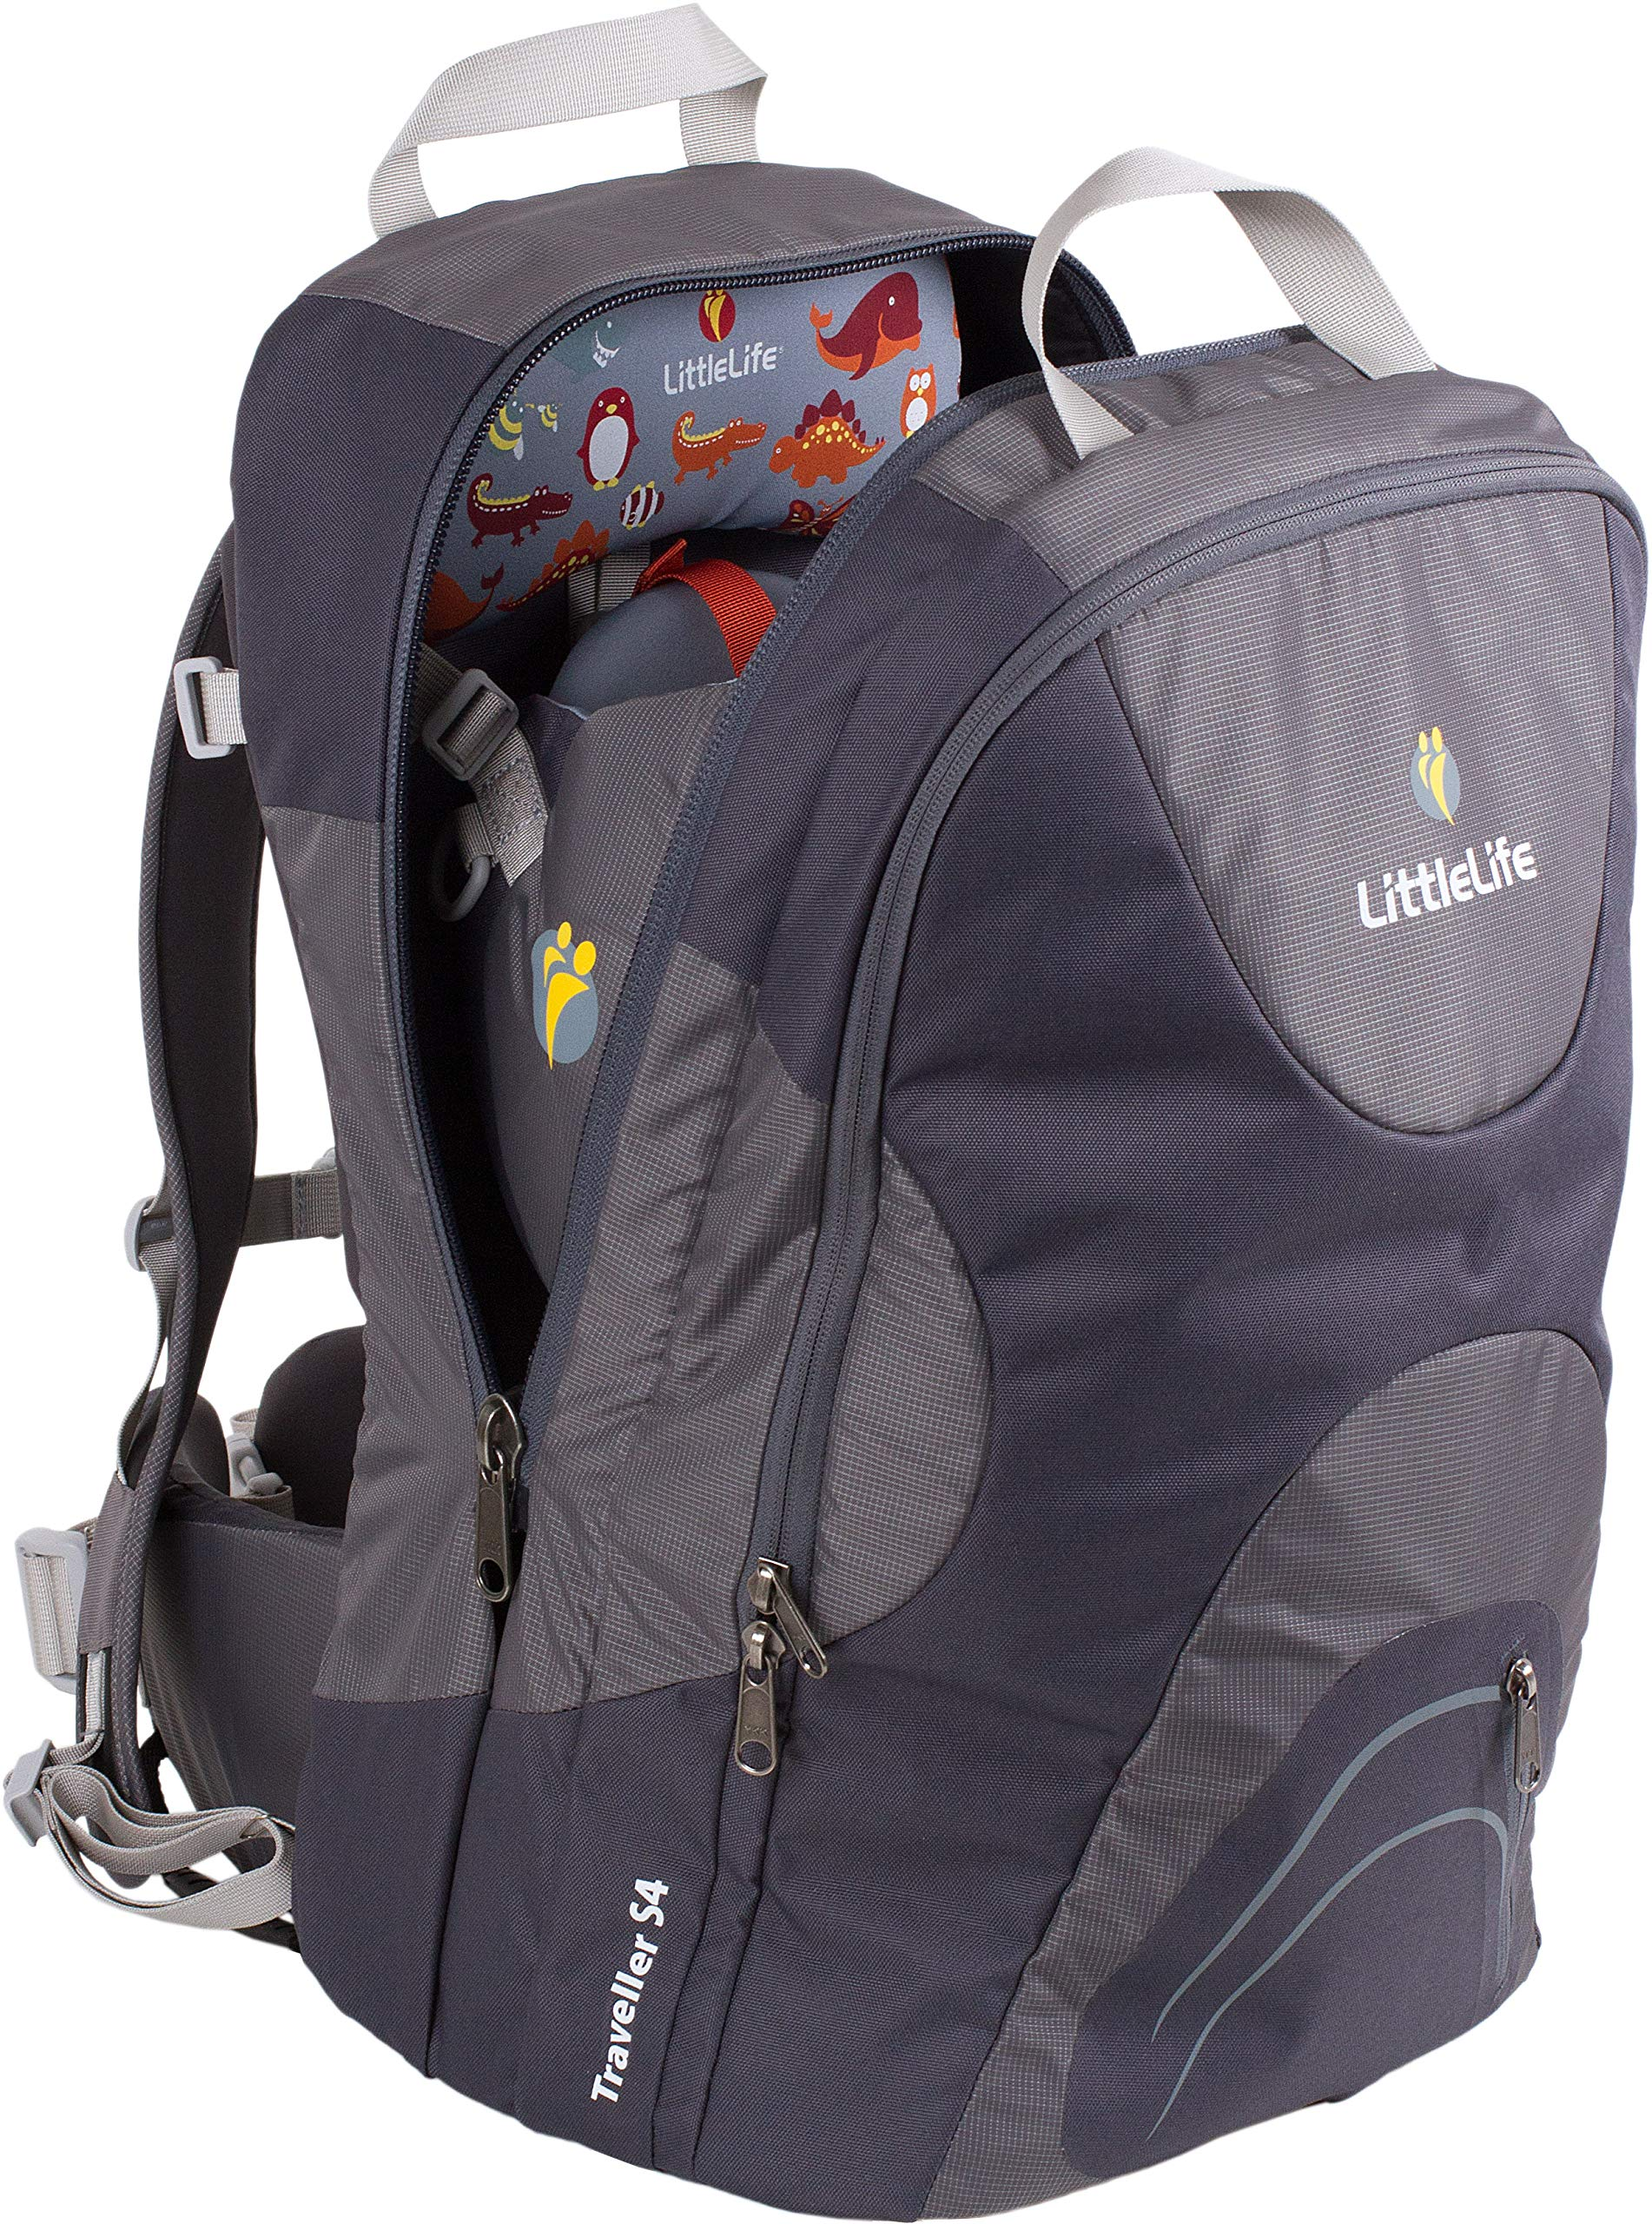 LittleLife Traveller S4 Child Carrier LittleLife Top grab handles and soft face pad & Hypalon toy loop Adjustable, anatomically shaped child seating area with x-buckle harness Padded back and shoulder sections 1